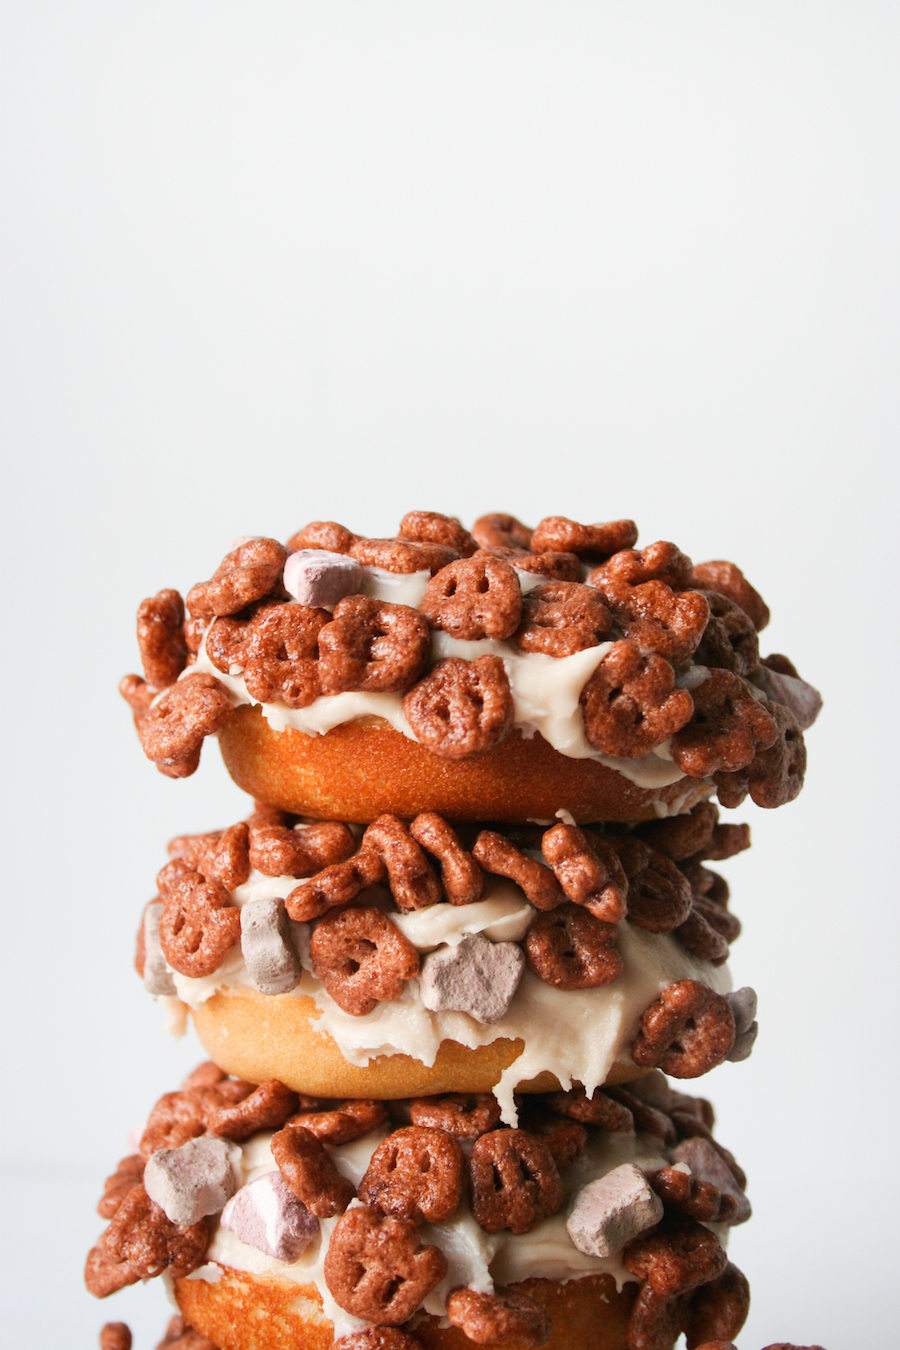 Count Chocula Cereal Milk Donuts // 13 Nights of Donuts // Legal Miss Sunshine